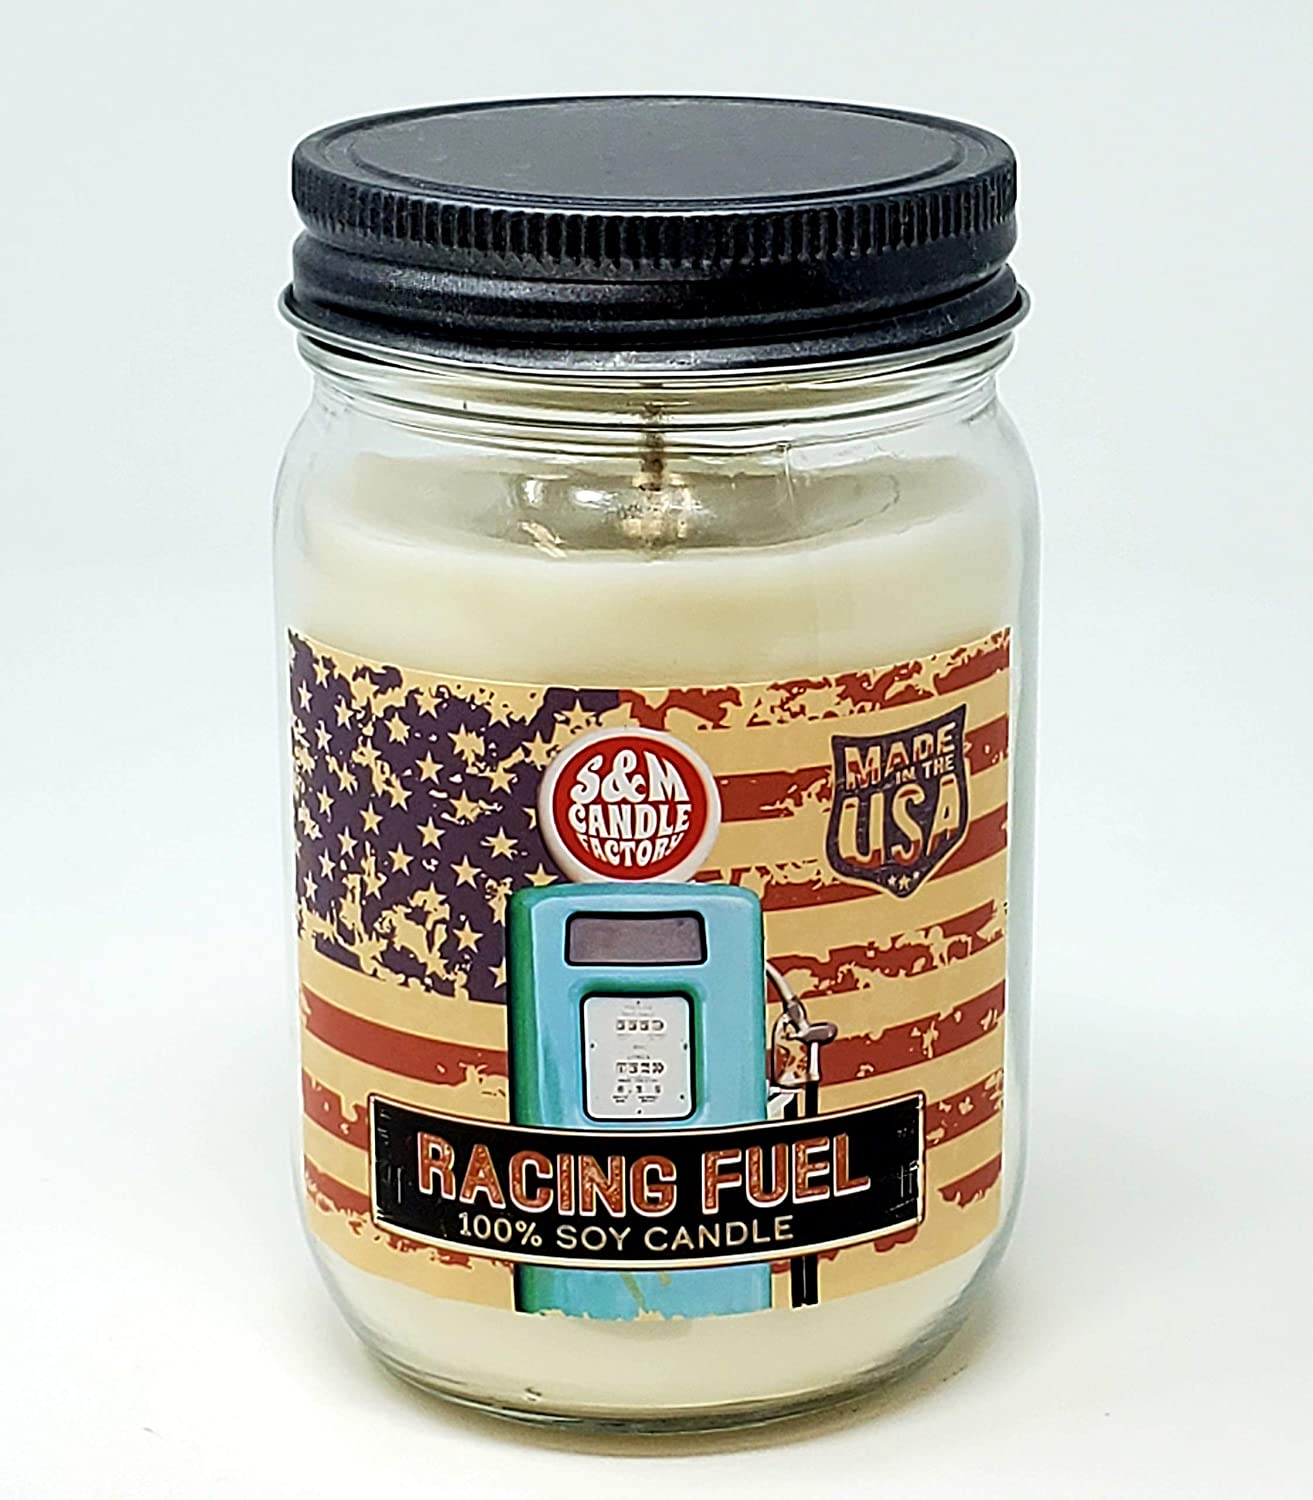 Racing Fuel Candle ~ Scented Soy Burn Max 53% OFF Tim Long 14oz Wax Manufacturer direct delivery